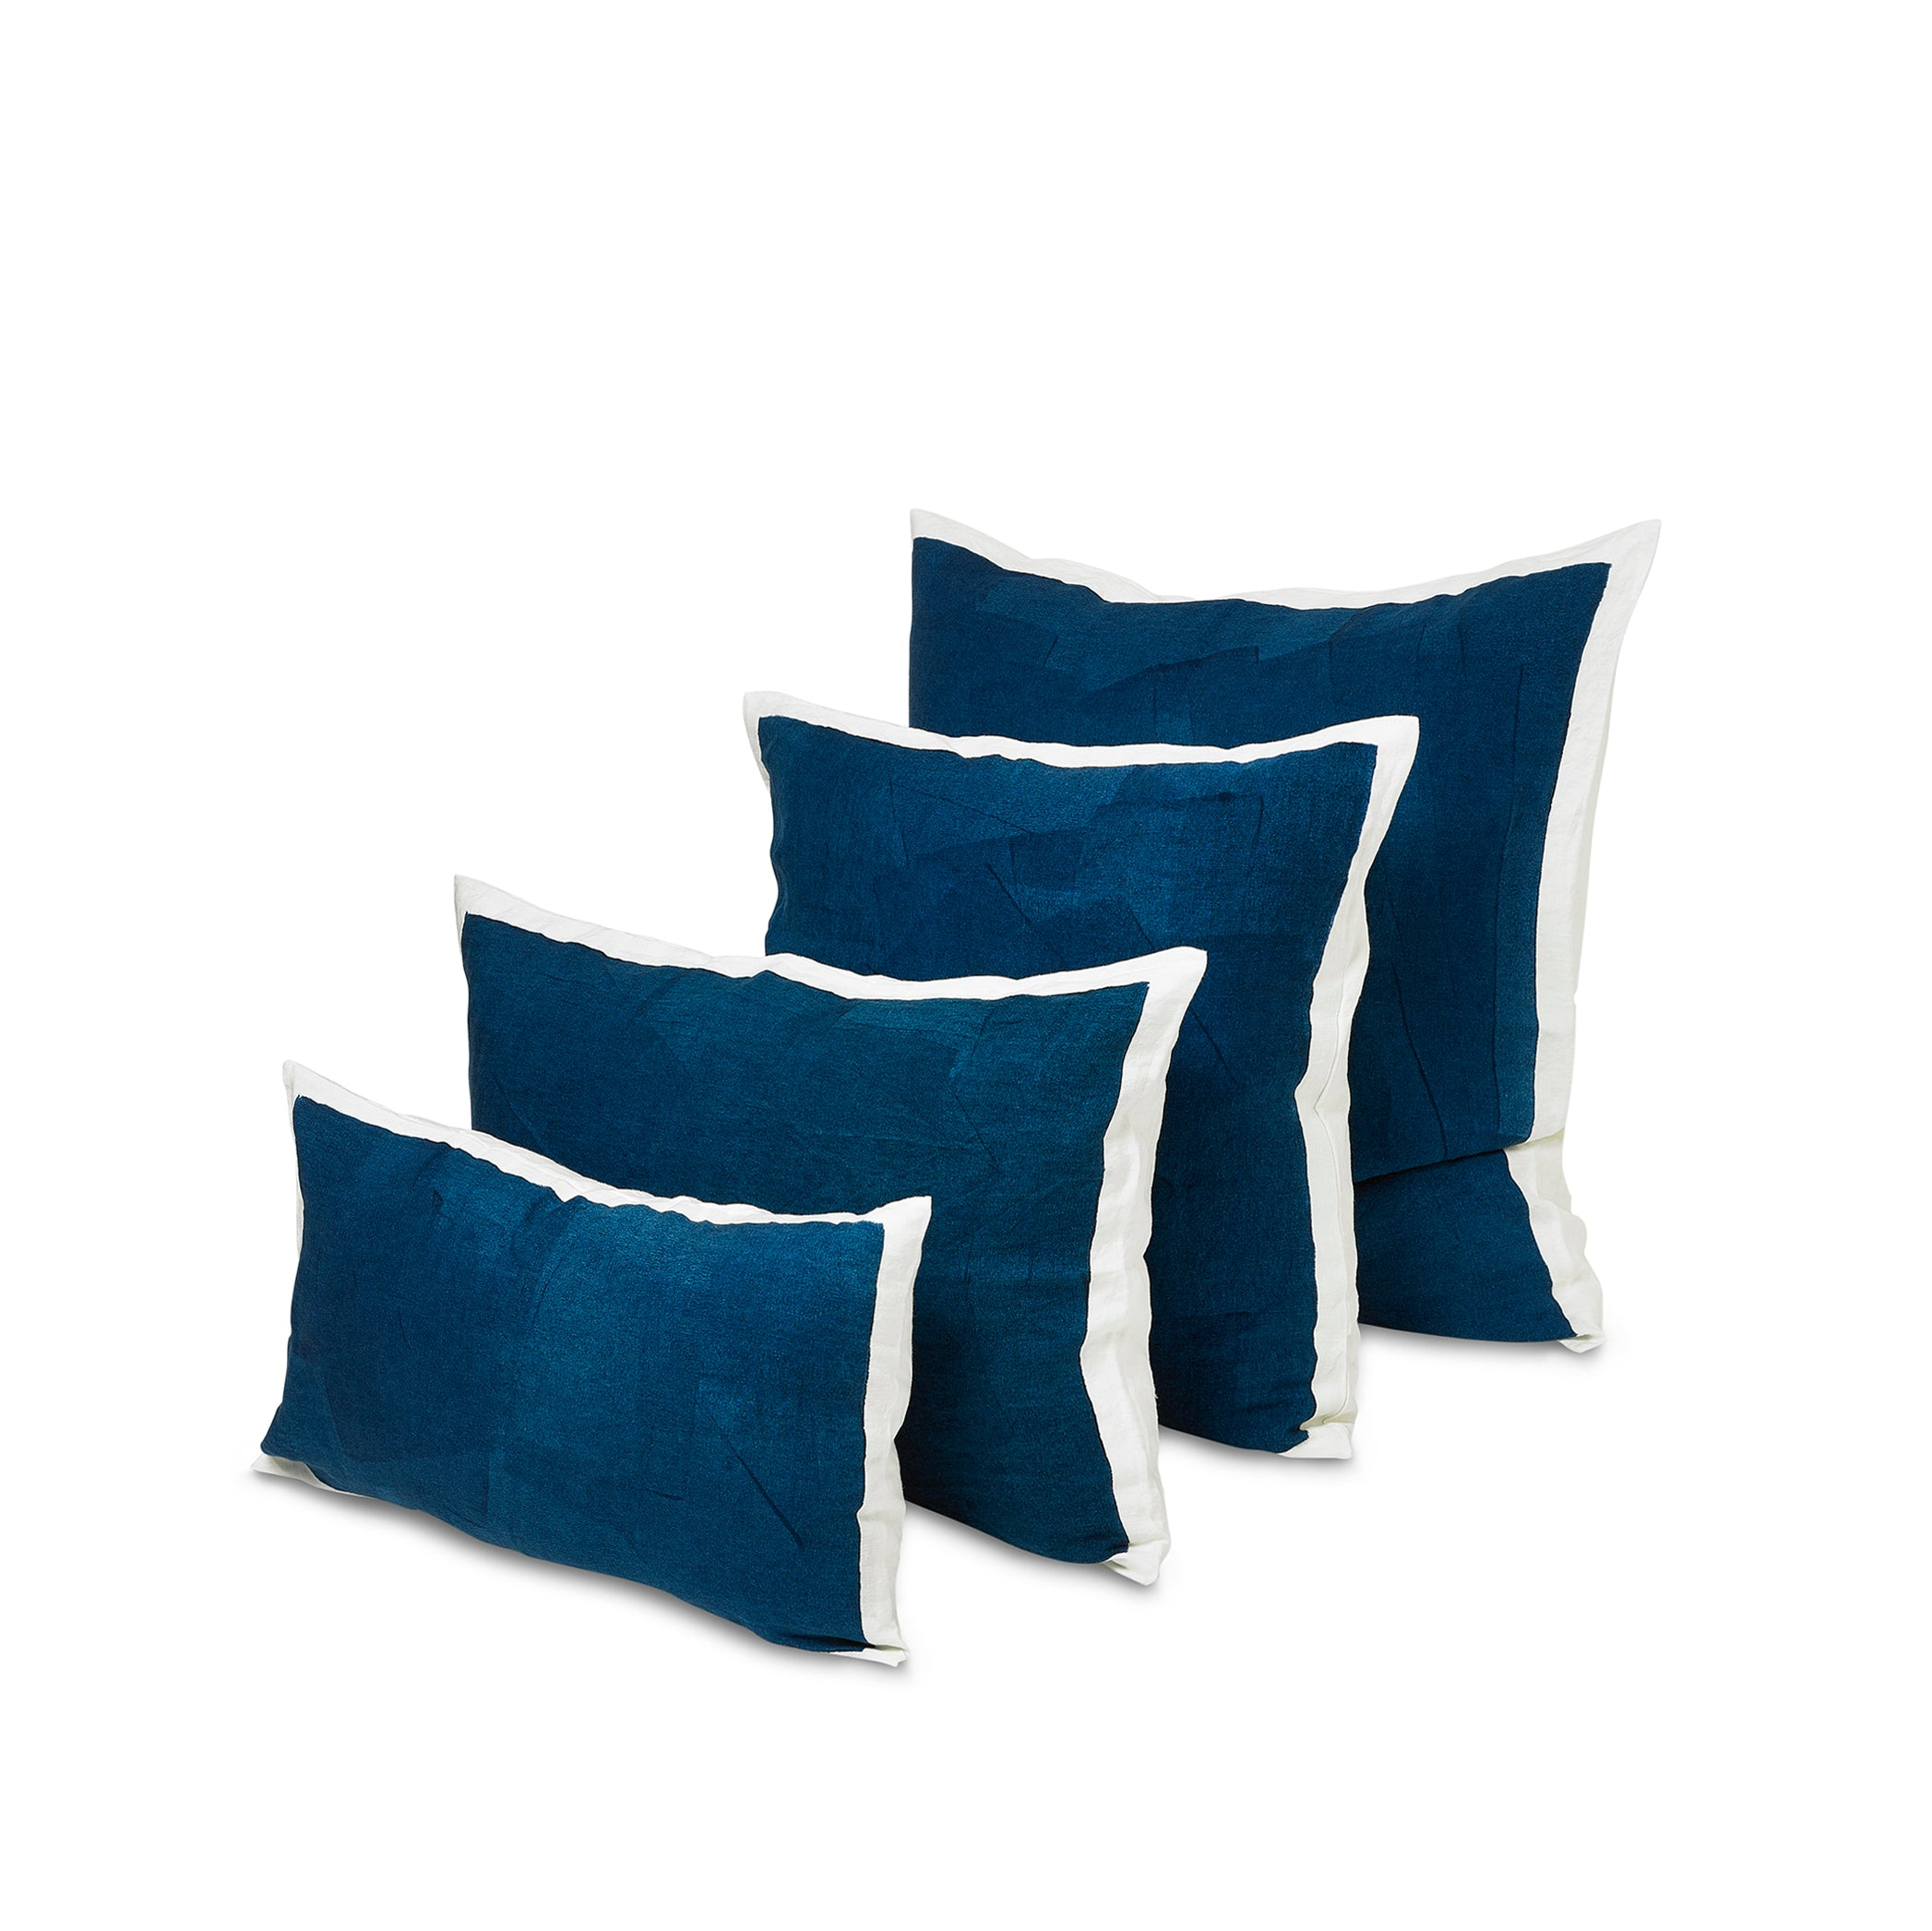 Hand Painted Linen Cushion Cover in Midnight Blue, 50cm x 50cm